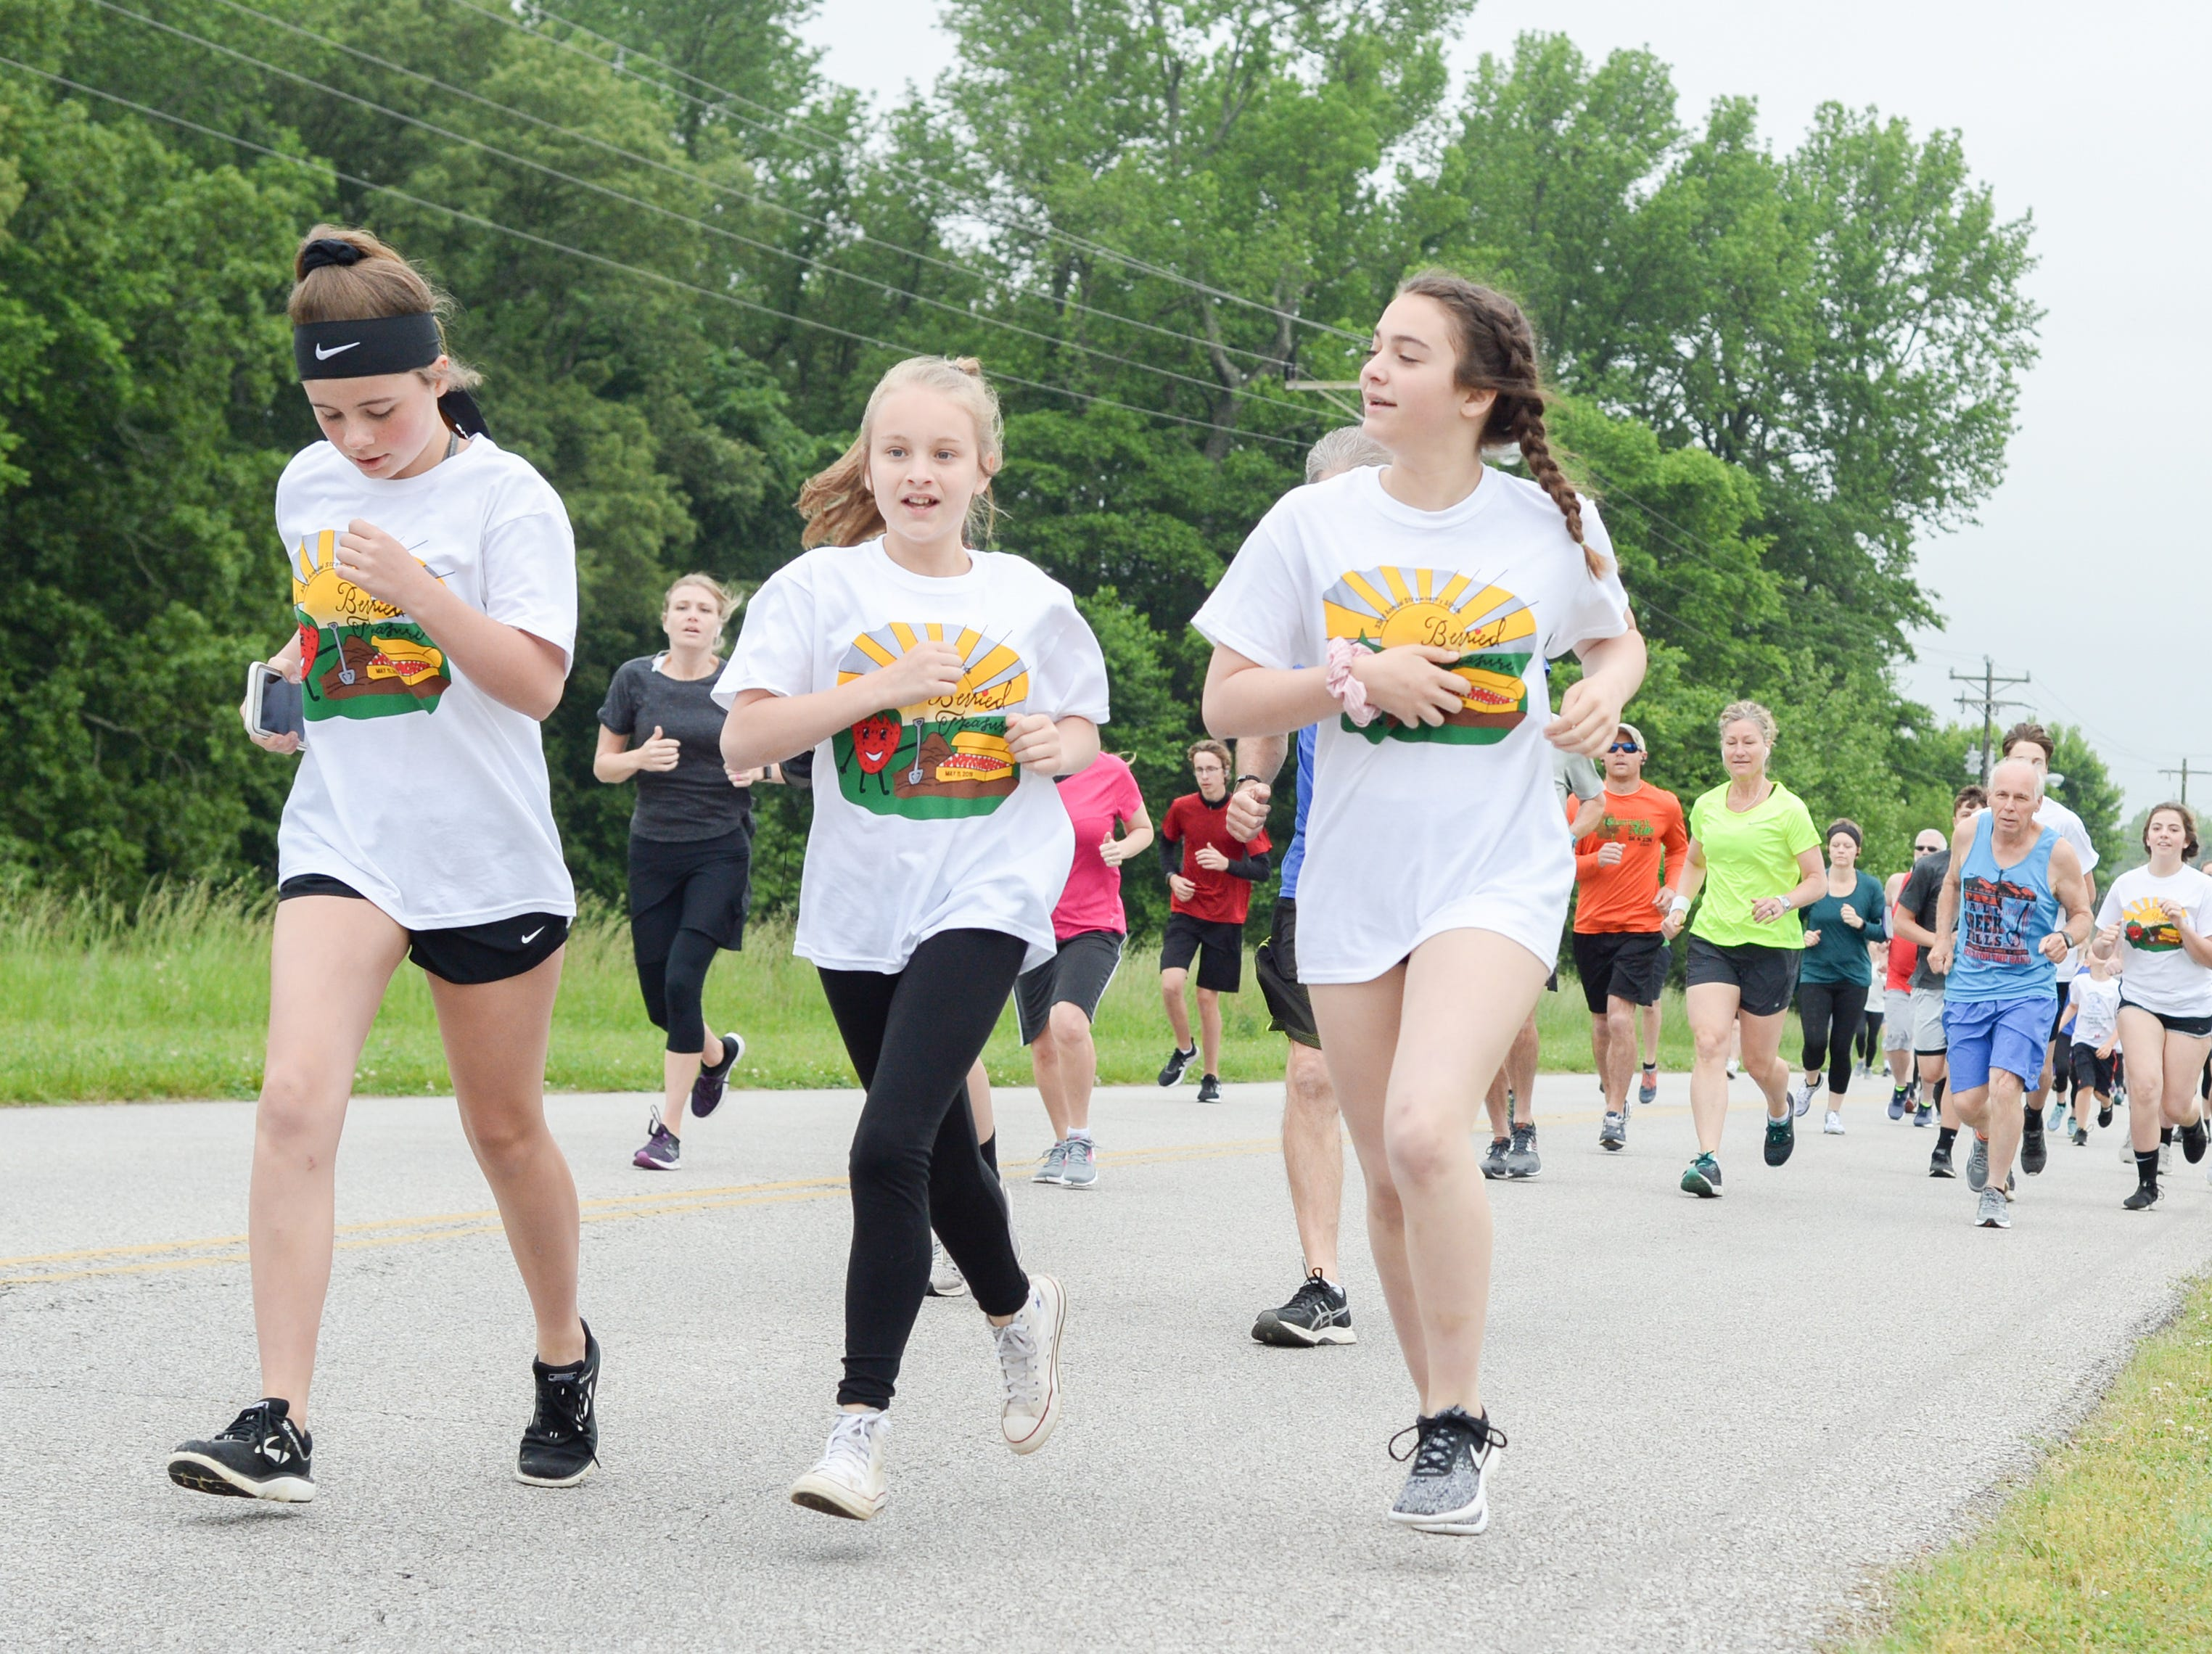 Participants put their best foot forward during the Strawberry Stride at Portland High School during the 78th Annual Middle Tennessee Strawberry Festival presented by the Portland Chamber of Commerce in Portland on Saturday, May 11.